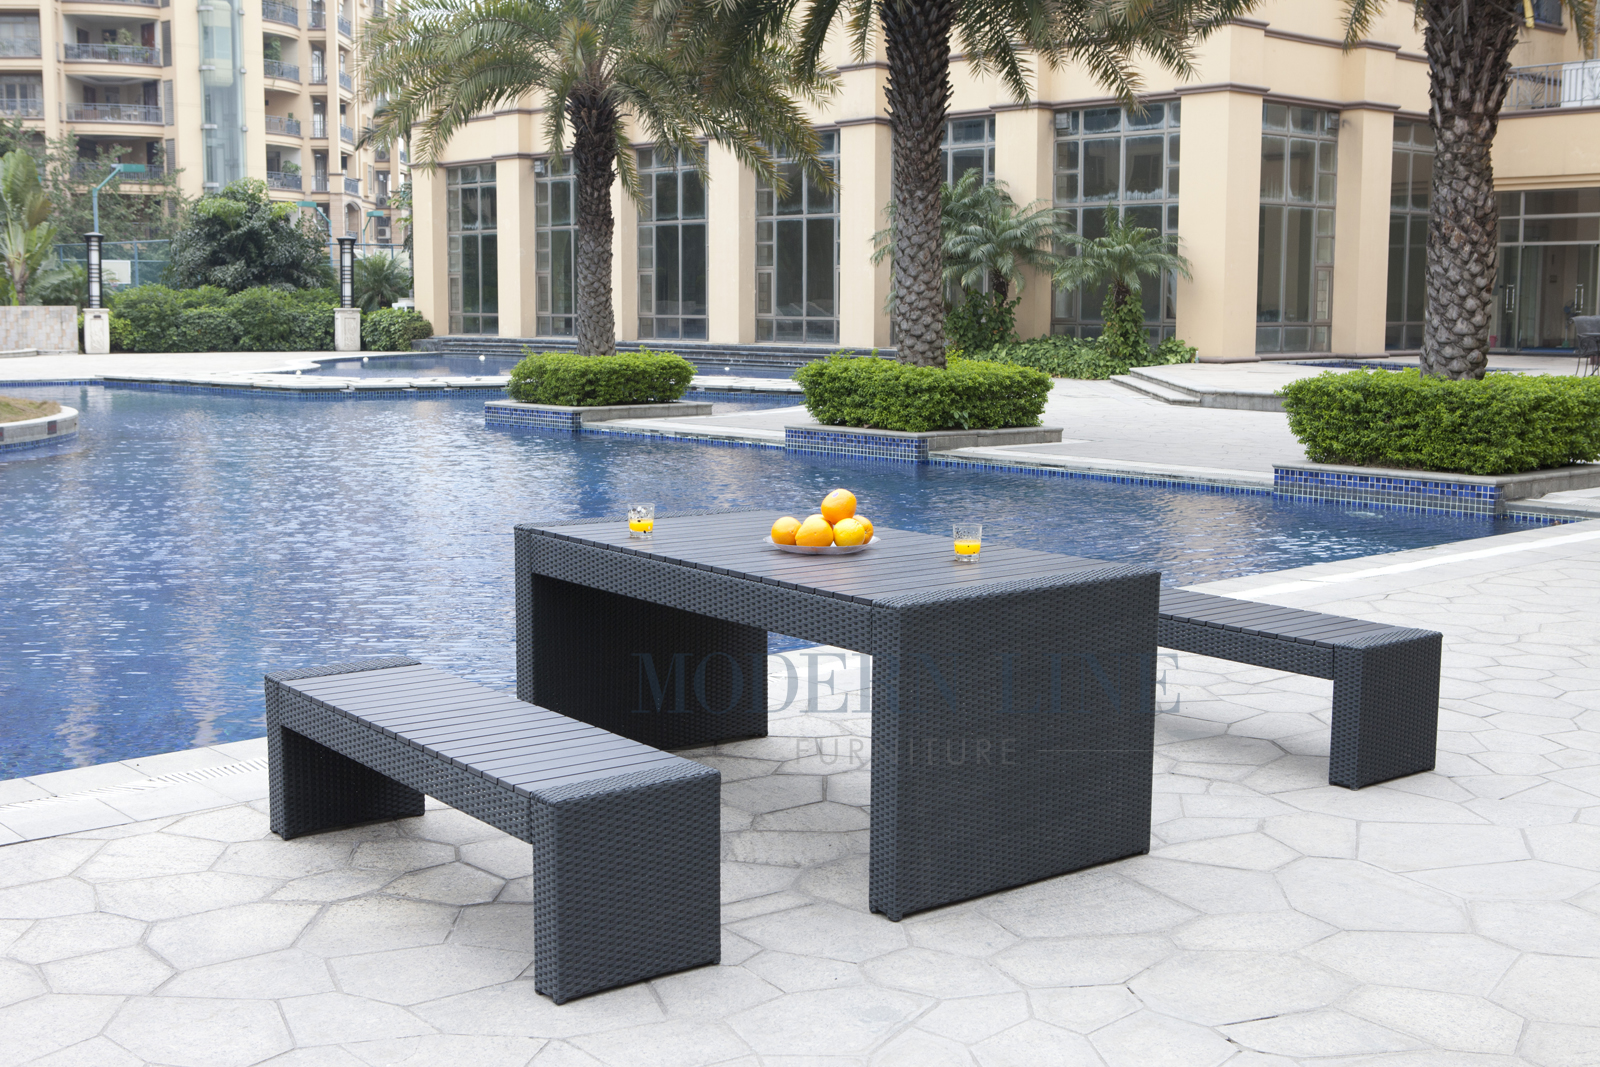 Modern Line Furniture   Commercial Furniture   Custom Made Furniture |  Black Wicker   All Weather Collection  Set Of One Dining Table And Two  Benches